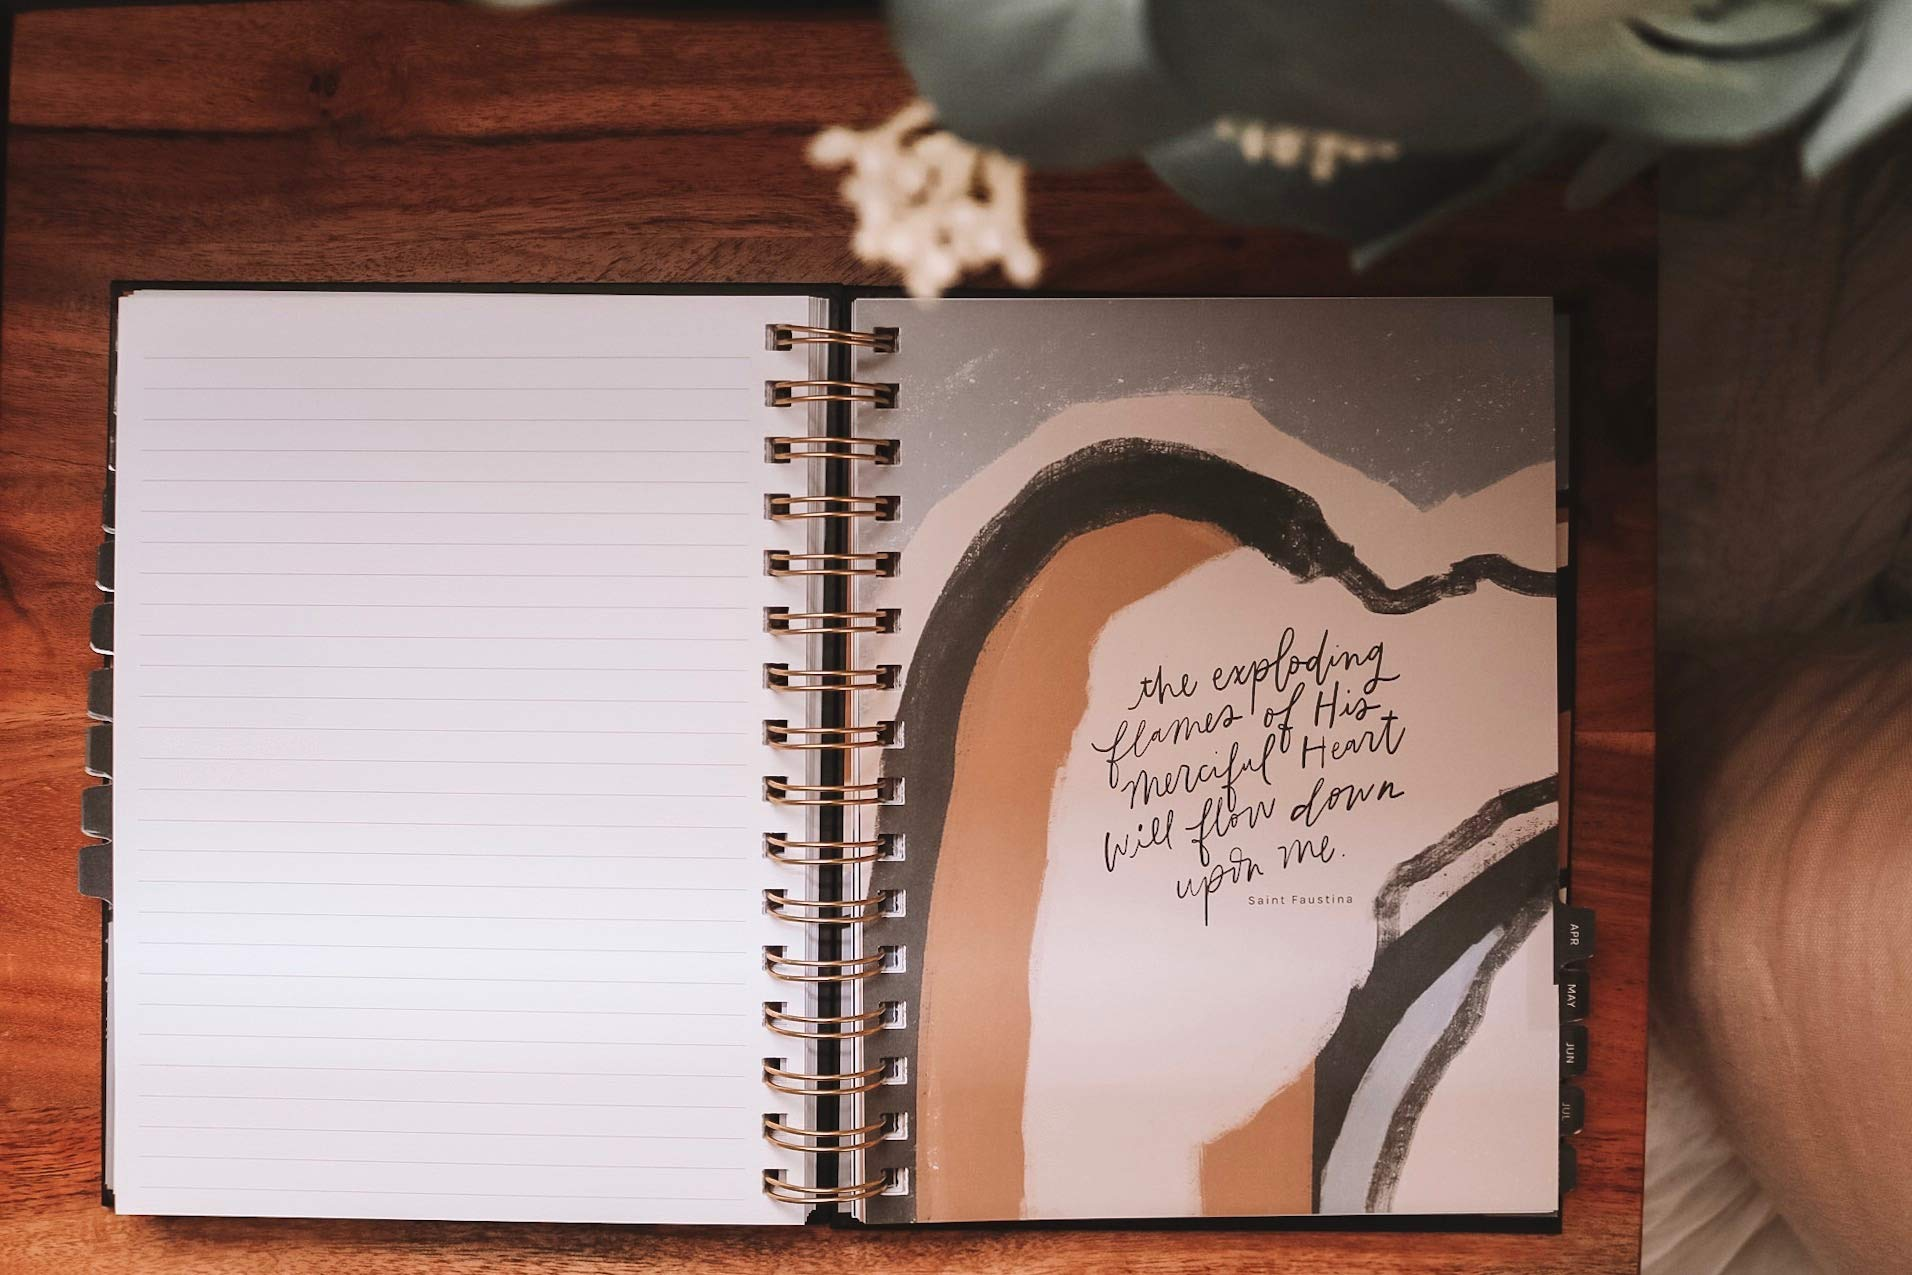 Blessed is She Liturgical Academic Year Planner 2019-2020 by Blessed is She (Image #3)